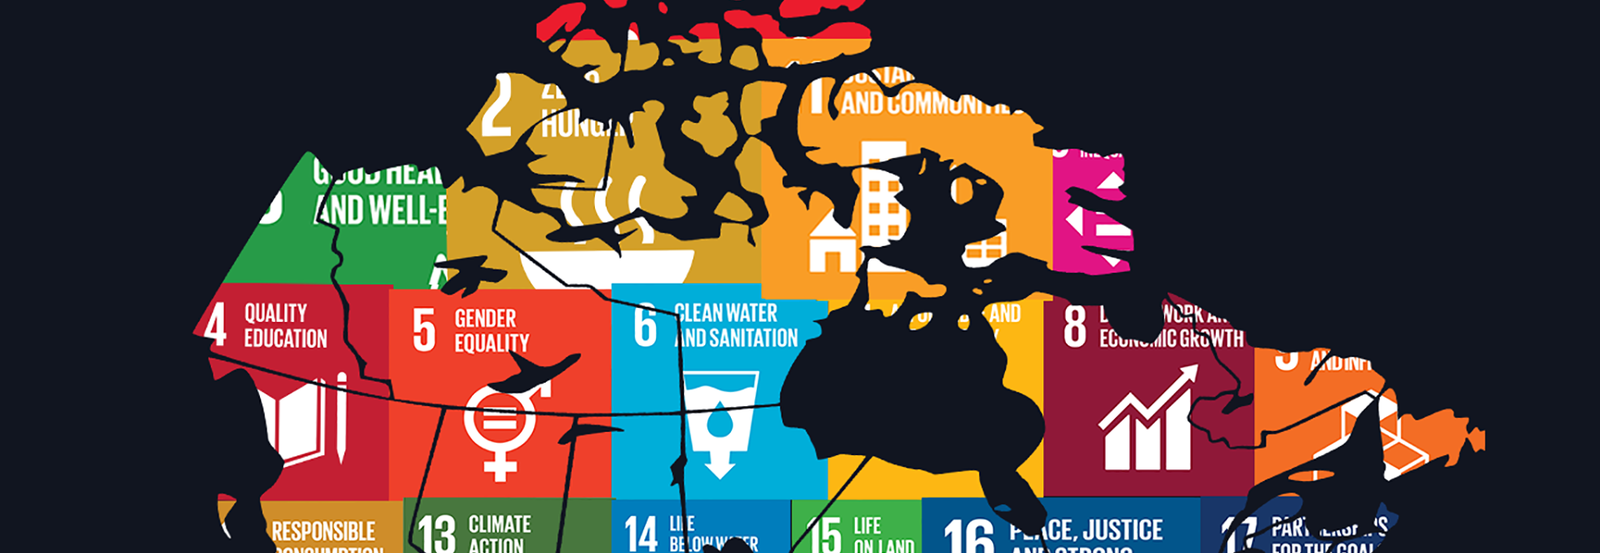 Map of Canada with sustainable development goals printed on it.